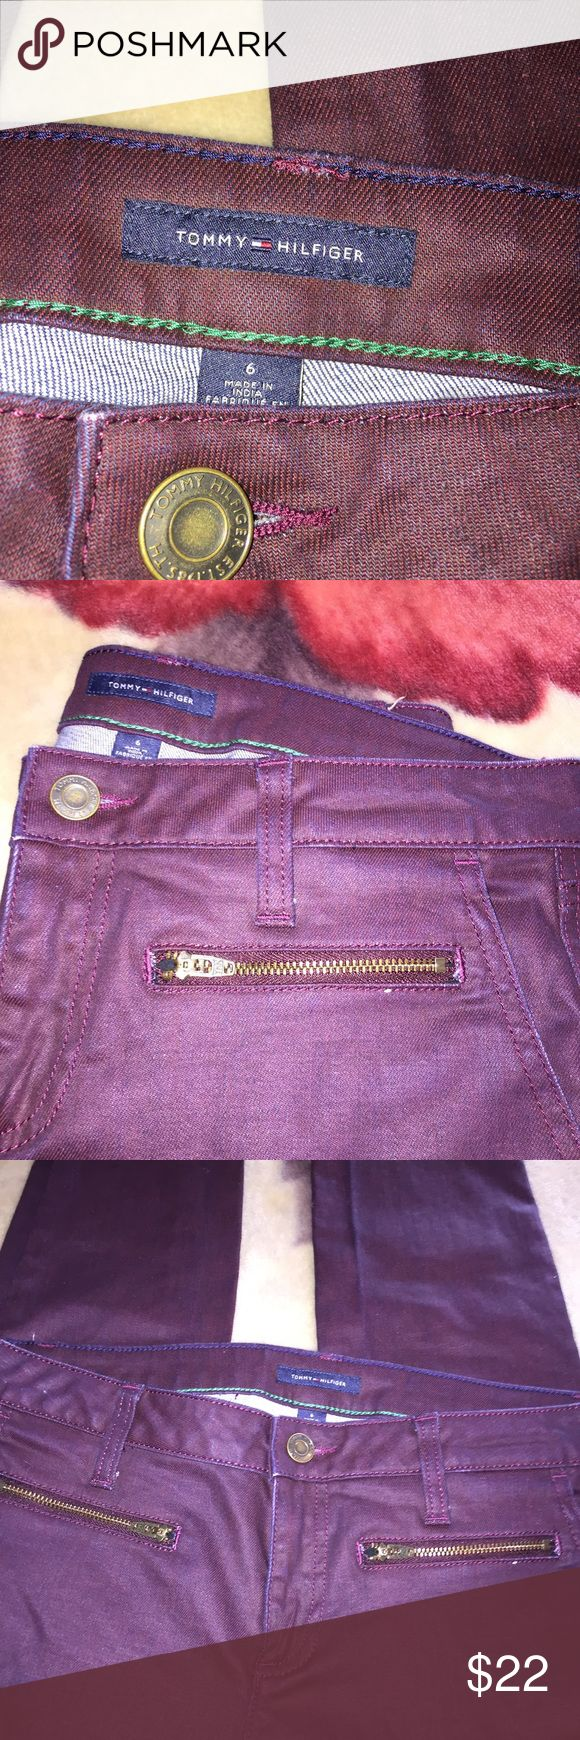 NWOT 6 TOMMY Hilfiger special coated FALL RED 👖 Sz 6, Tommy hilfiger brand,great pants for fall,a pretty burgundy/wine/red blue jeans ,great fall/autumn pants with boots or booties  and chunky sweaters. Has front pockets as well as faux zipper pocket detail.cuter than pics show Skinny or tapered straight leg.,new without tags condition. Tommy Hilfiger Jeans